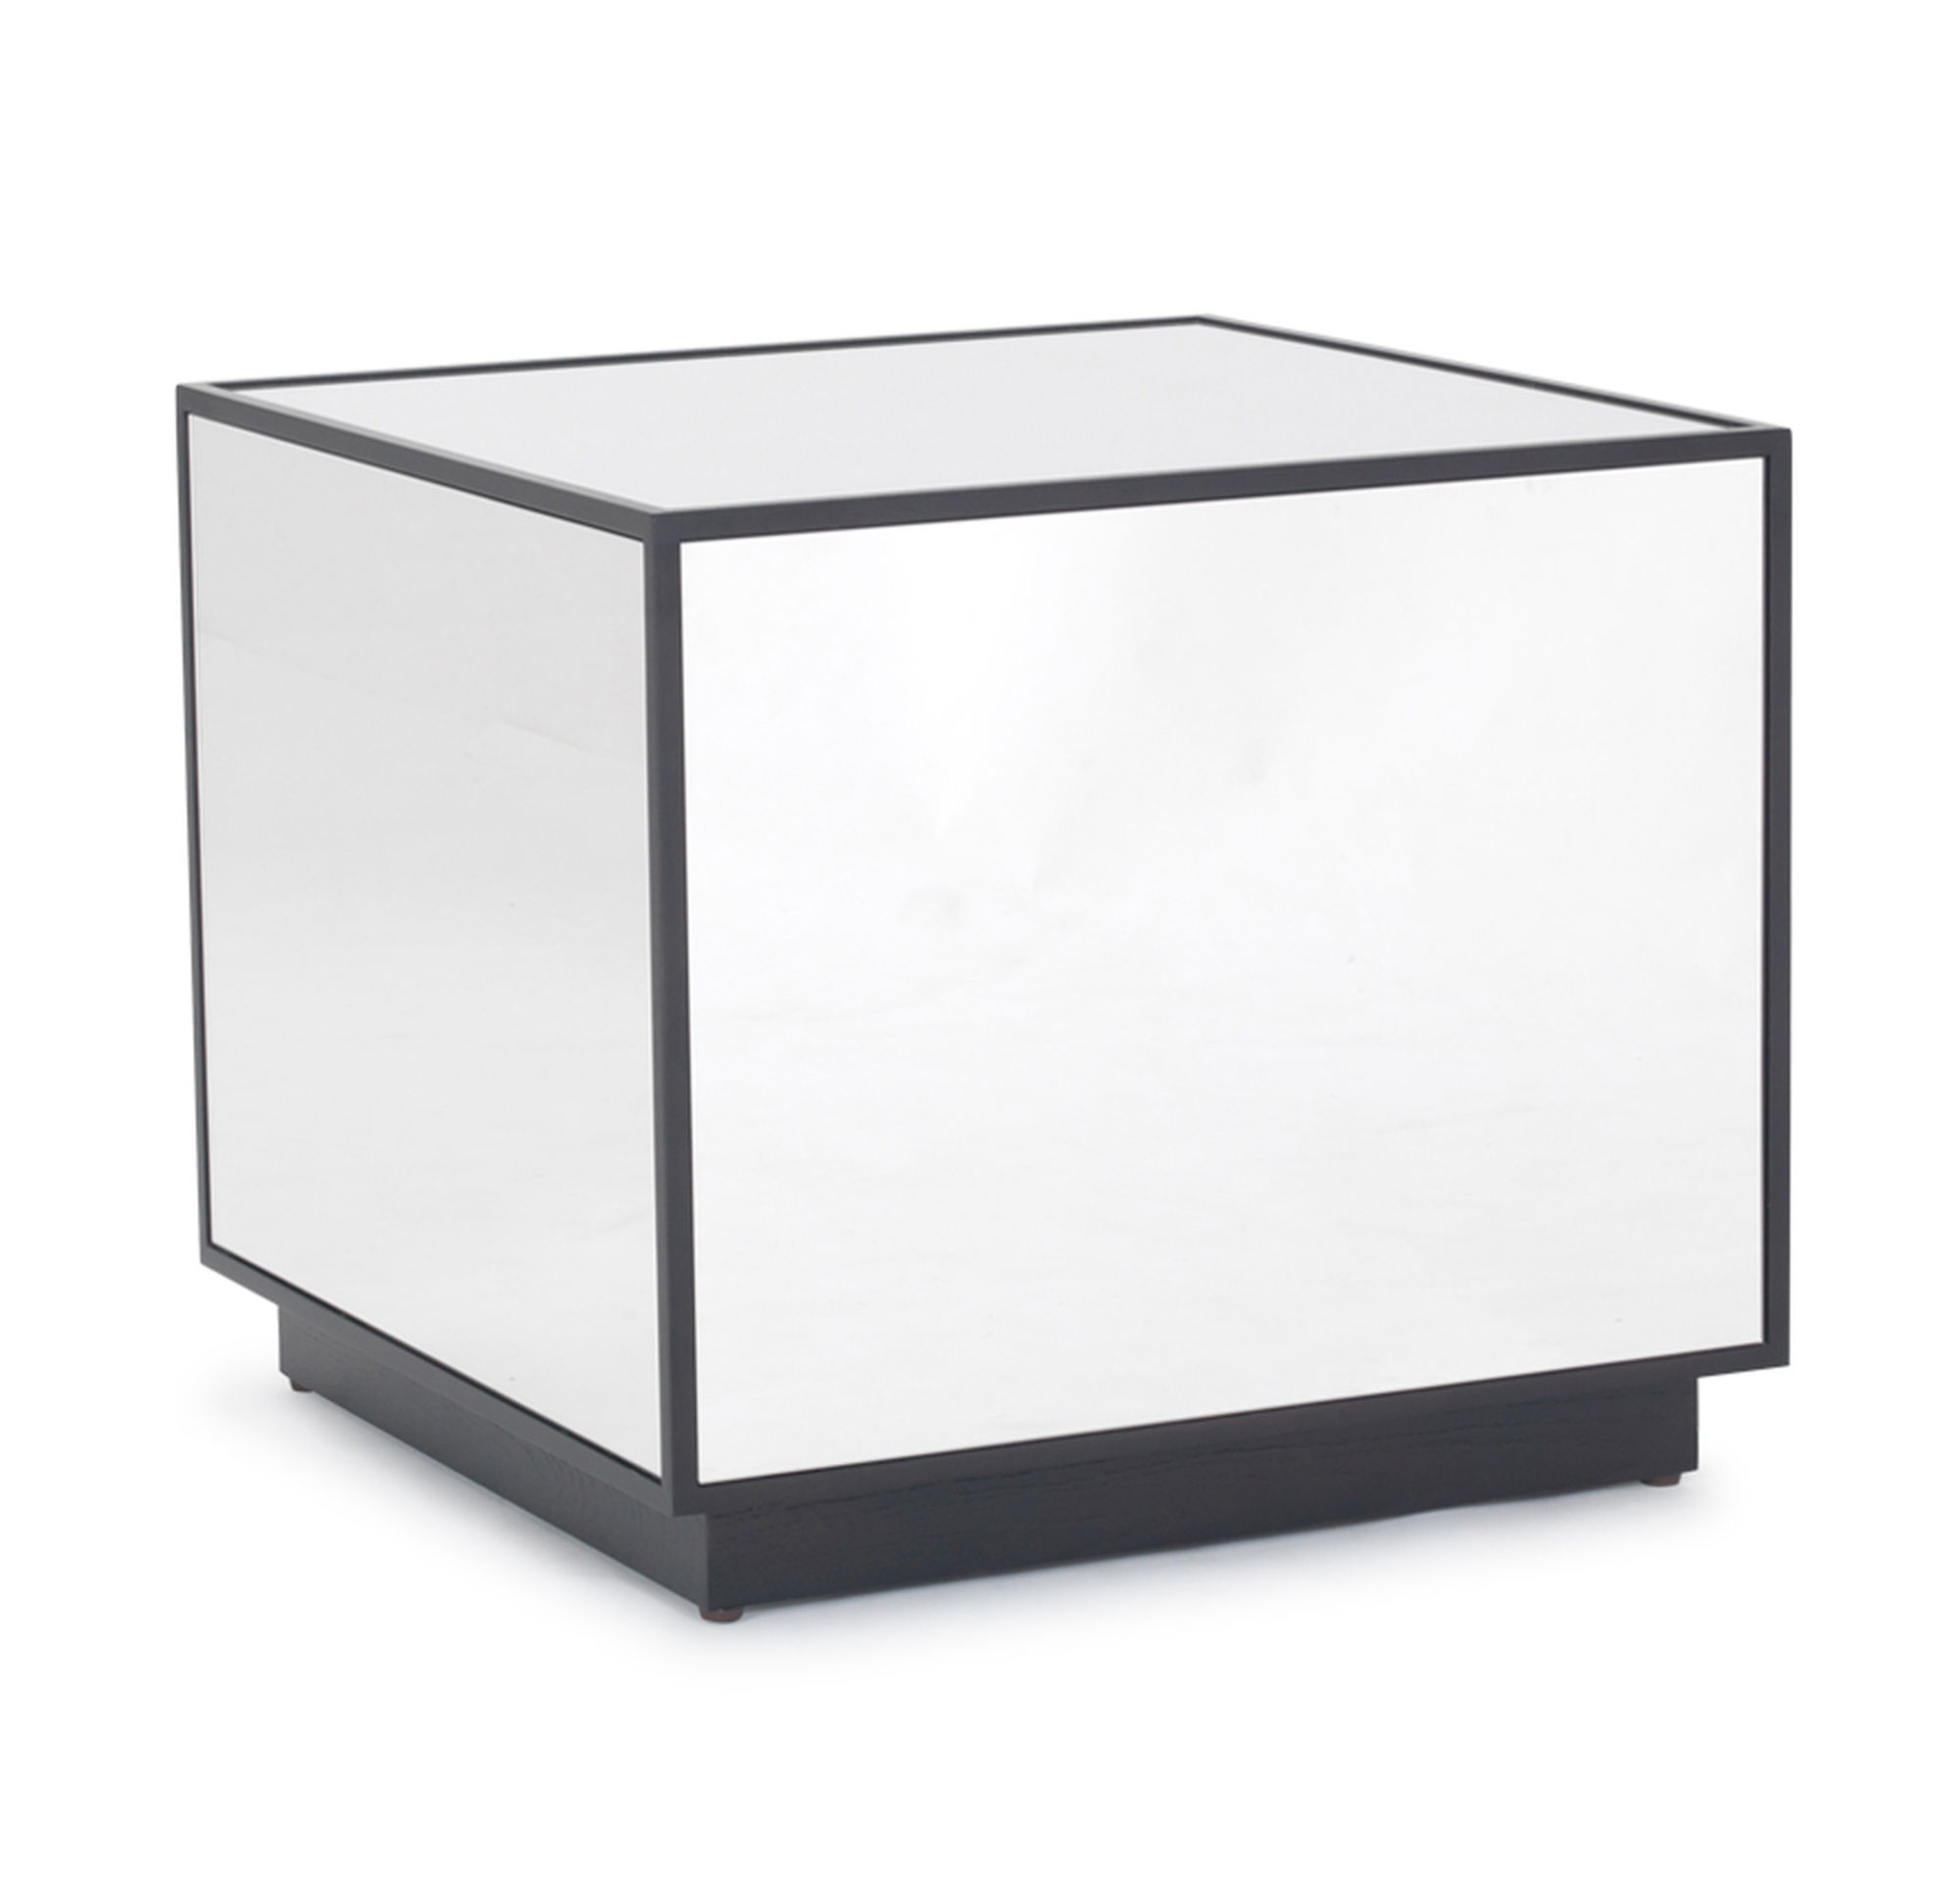 sutton cube side table stb hero black with drawer gray sofa set farmhouse orange demilune old fashioned storage chest threshold mirrored accent gold plastic tablecloth silver red